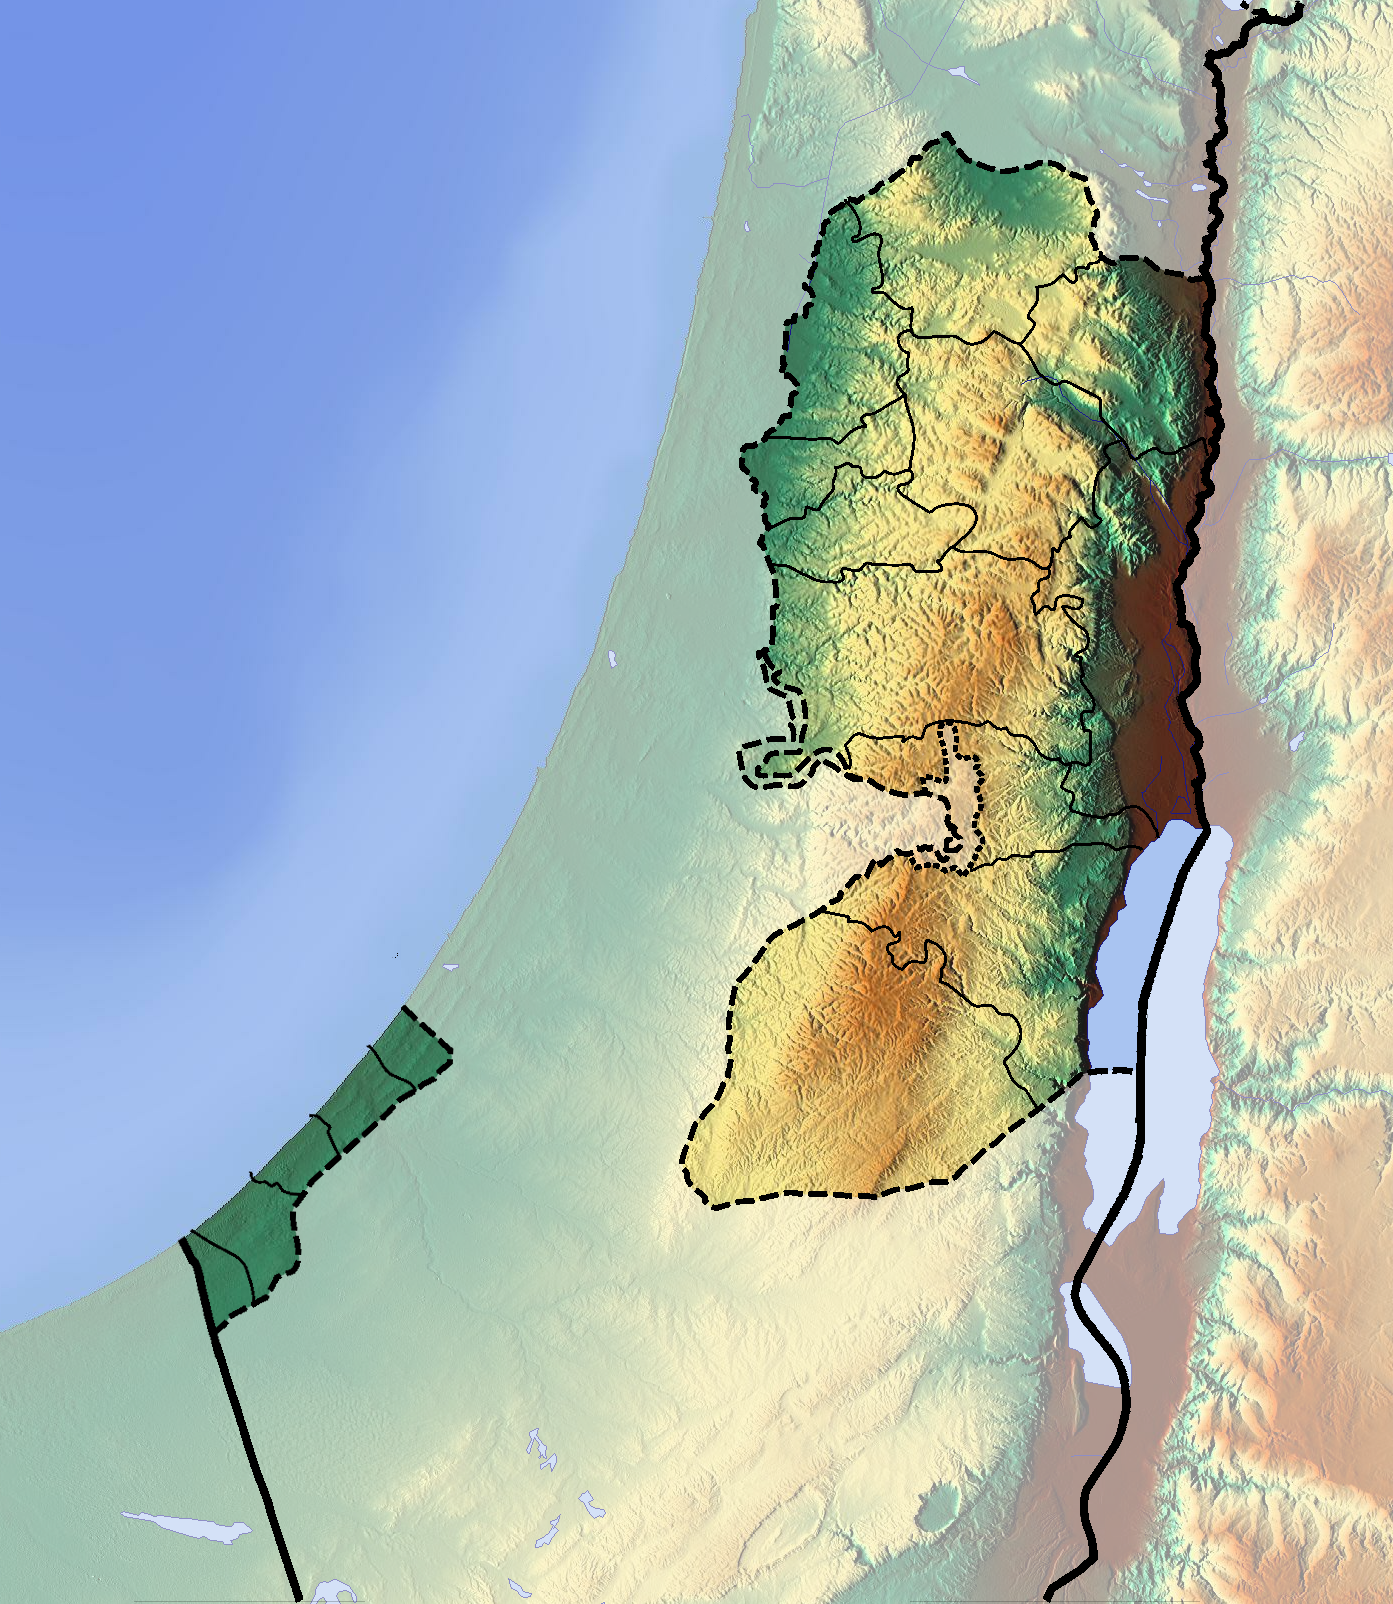 FilePalestine Location Map Topographicpng Wikimedia Commons - Palestine location